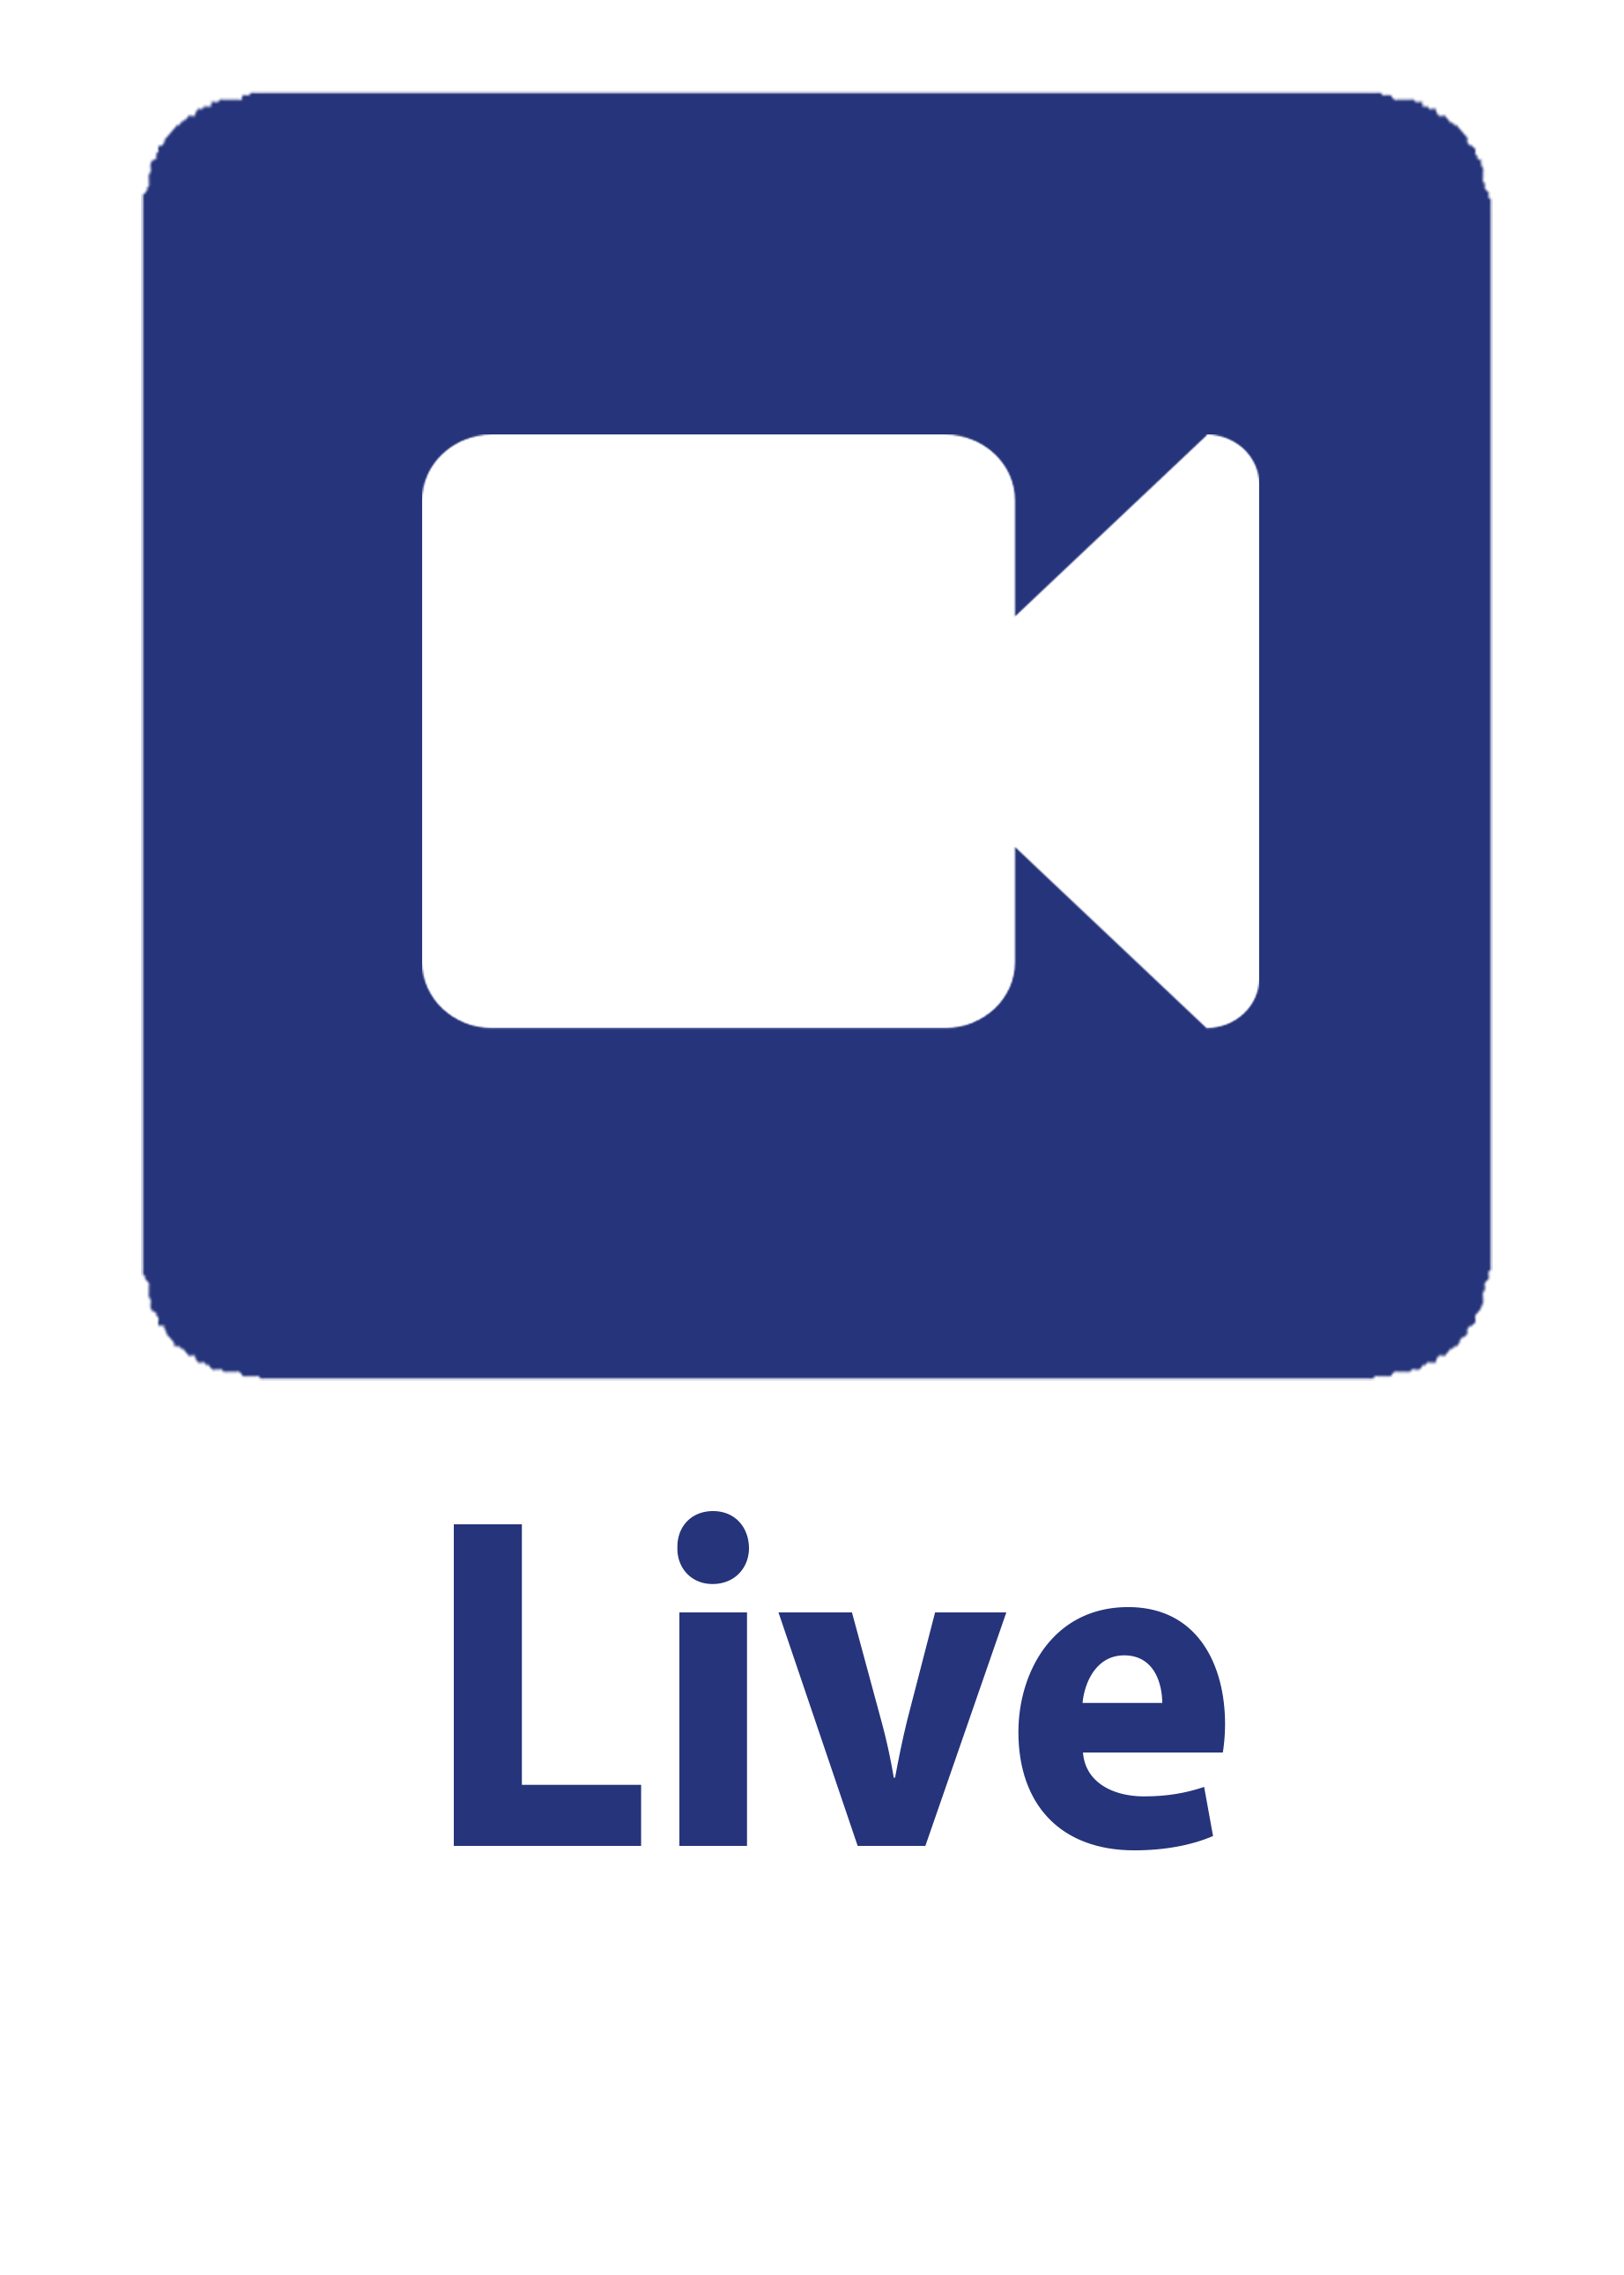 Facebook live icon png. Computer icons television streaming